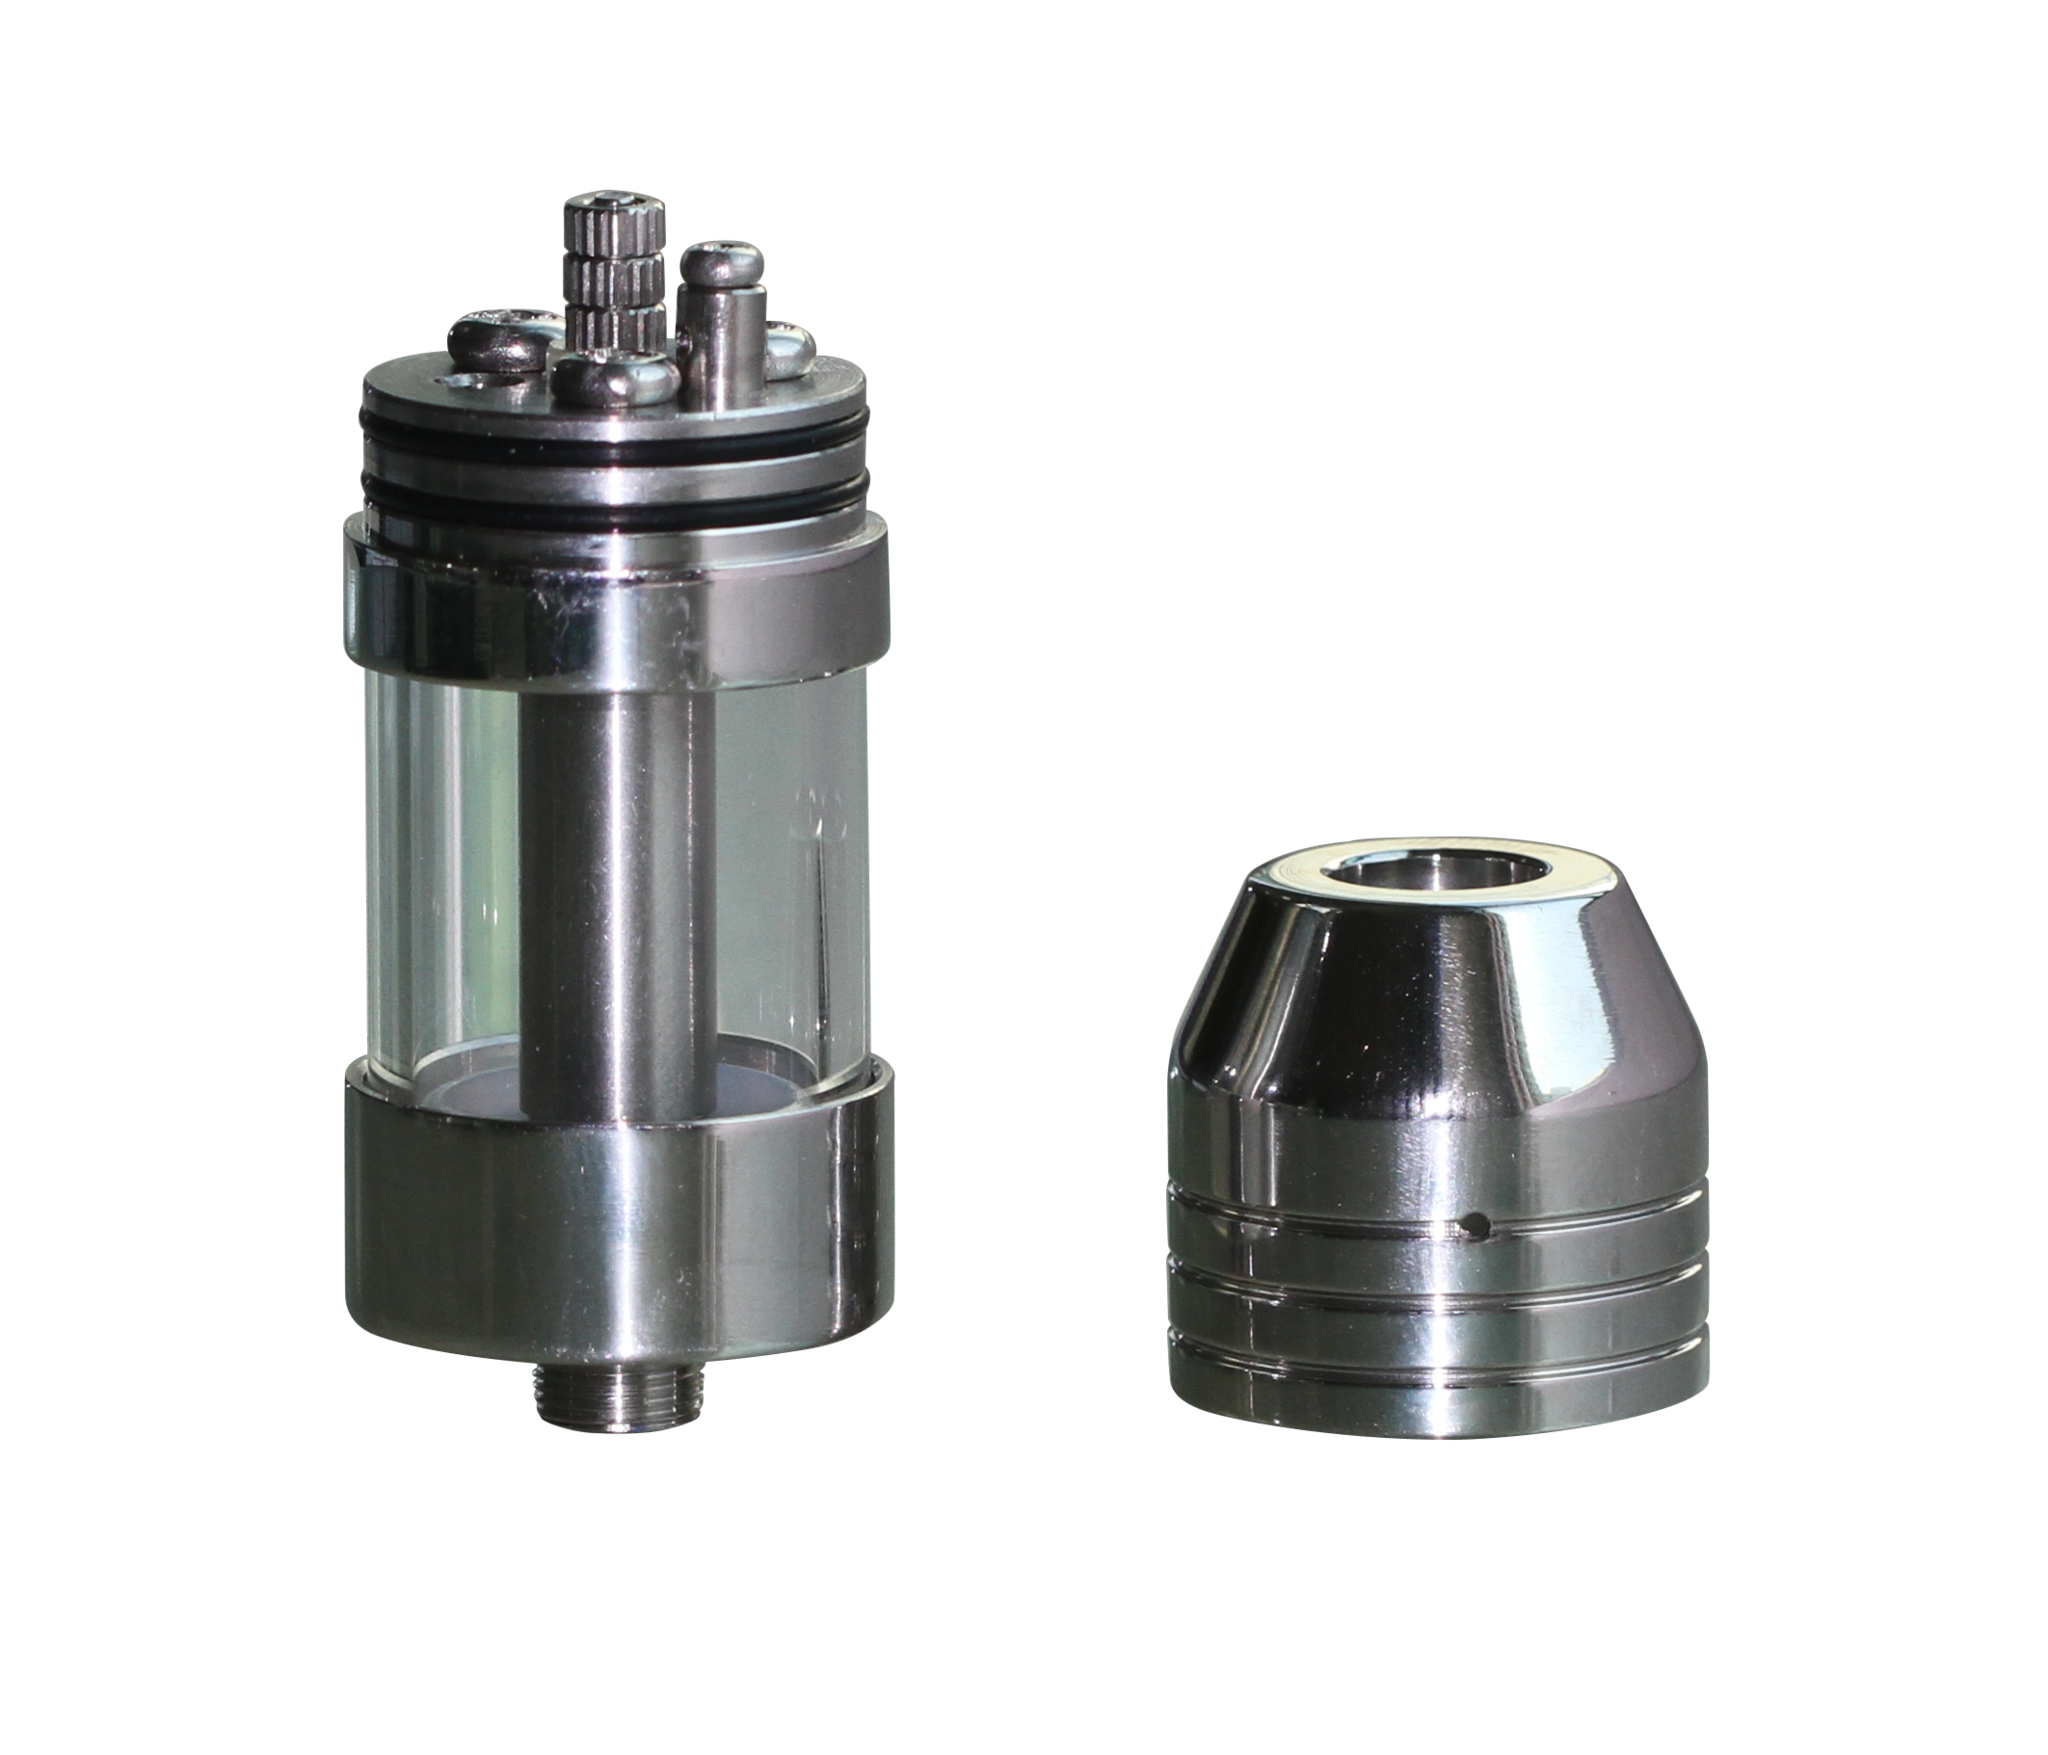 UD AGA-TD rebuildable dual coil atomizer with pyrex glass tank